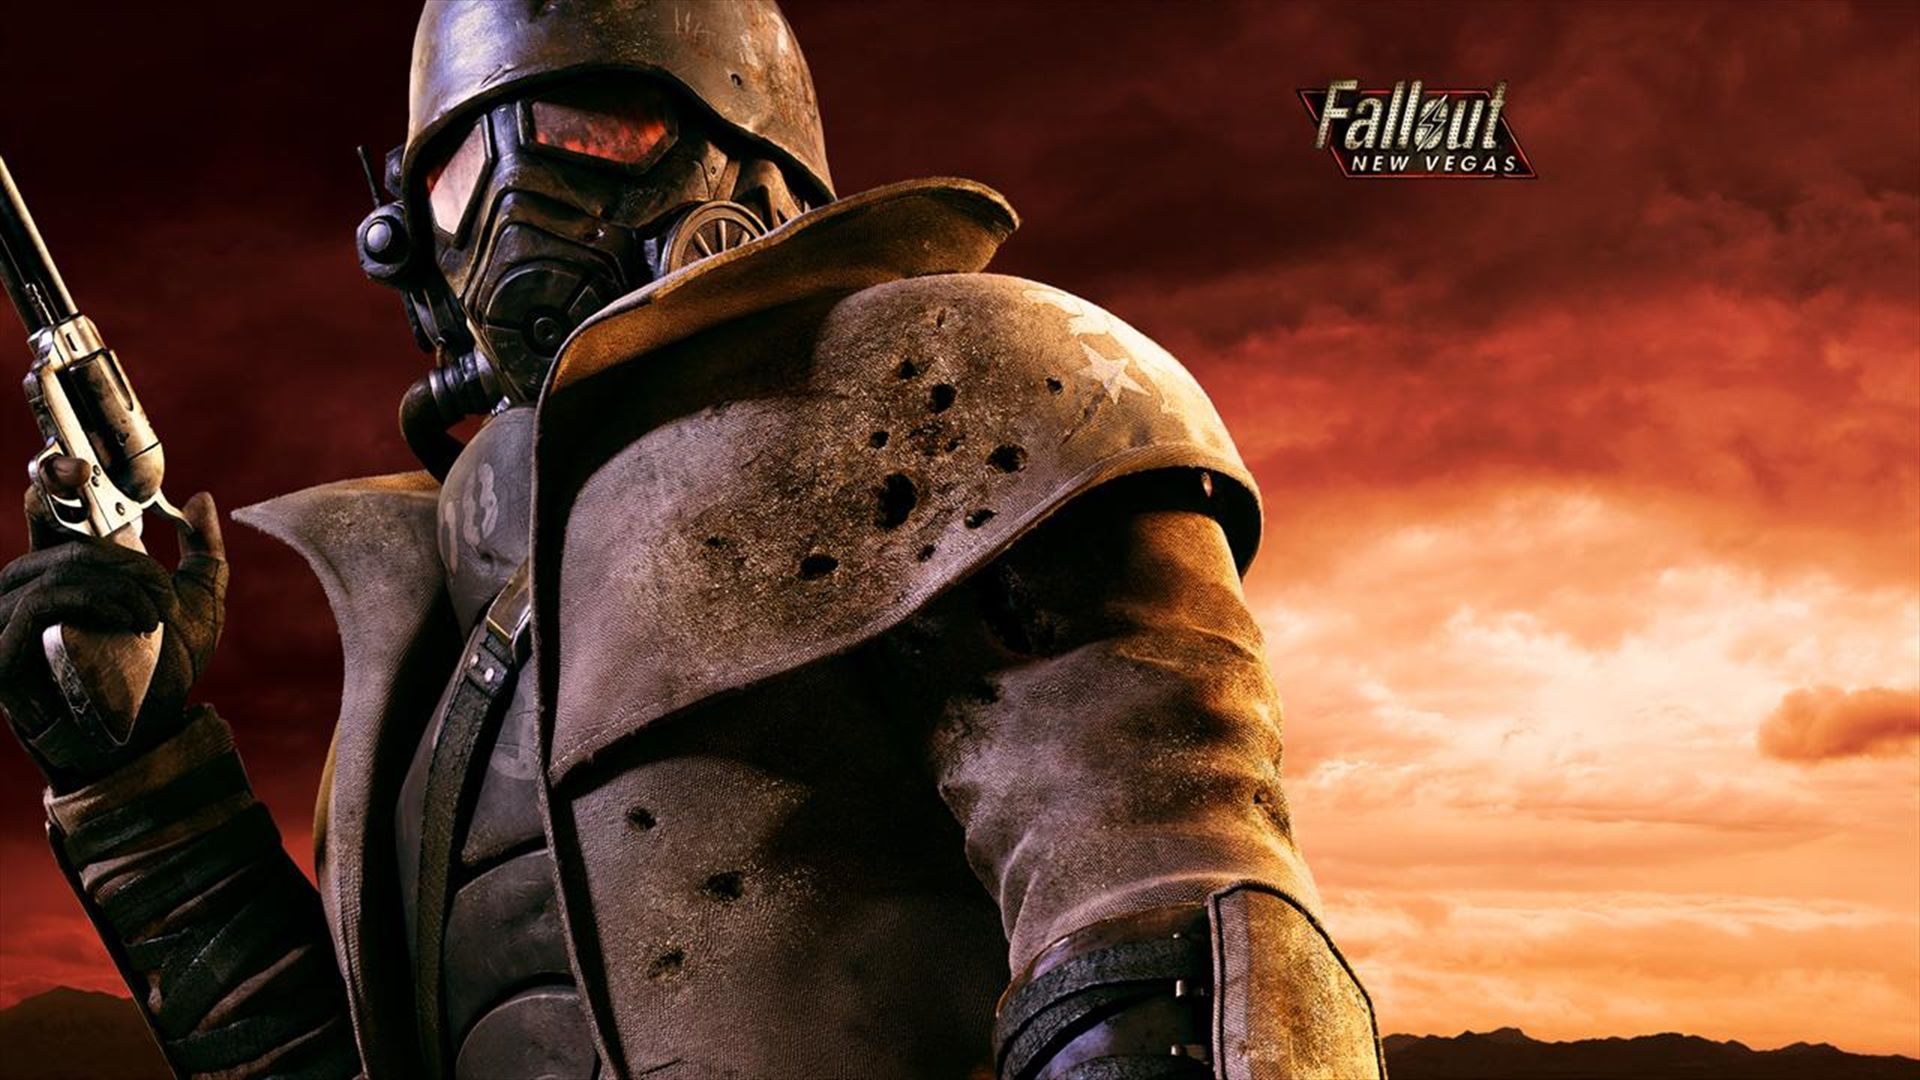 Buy Fallout New Vegas